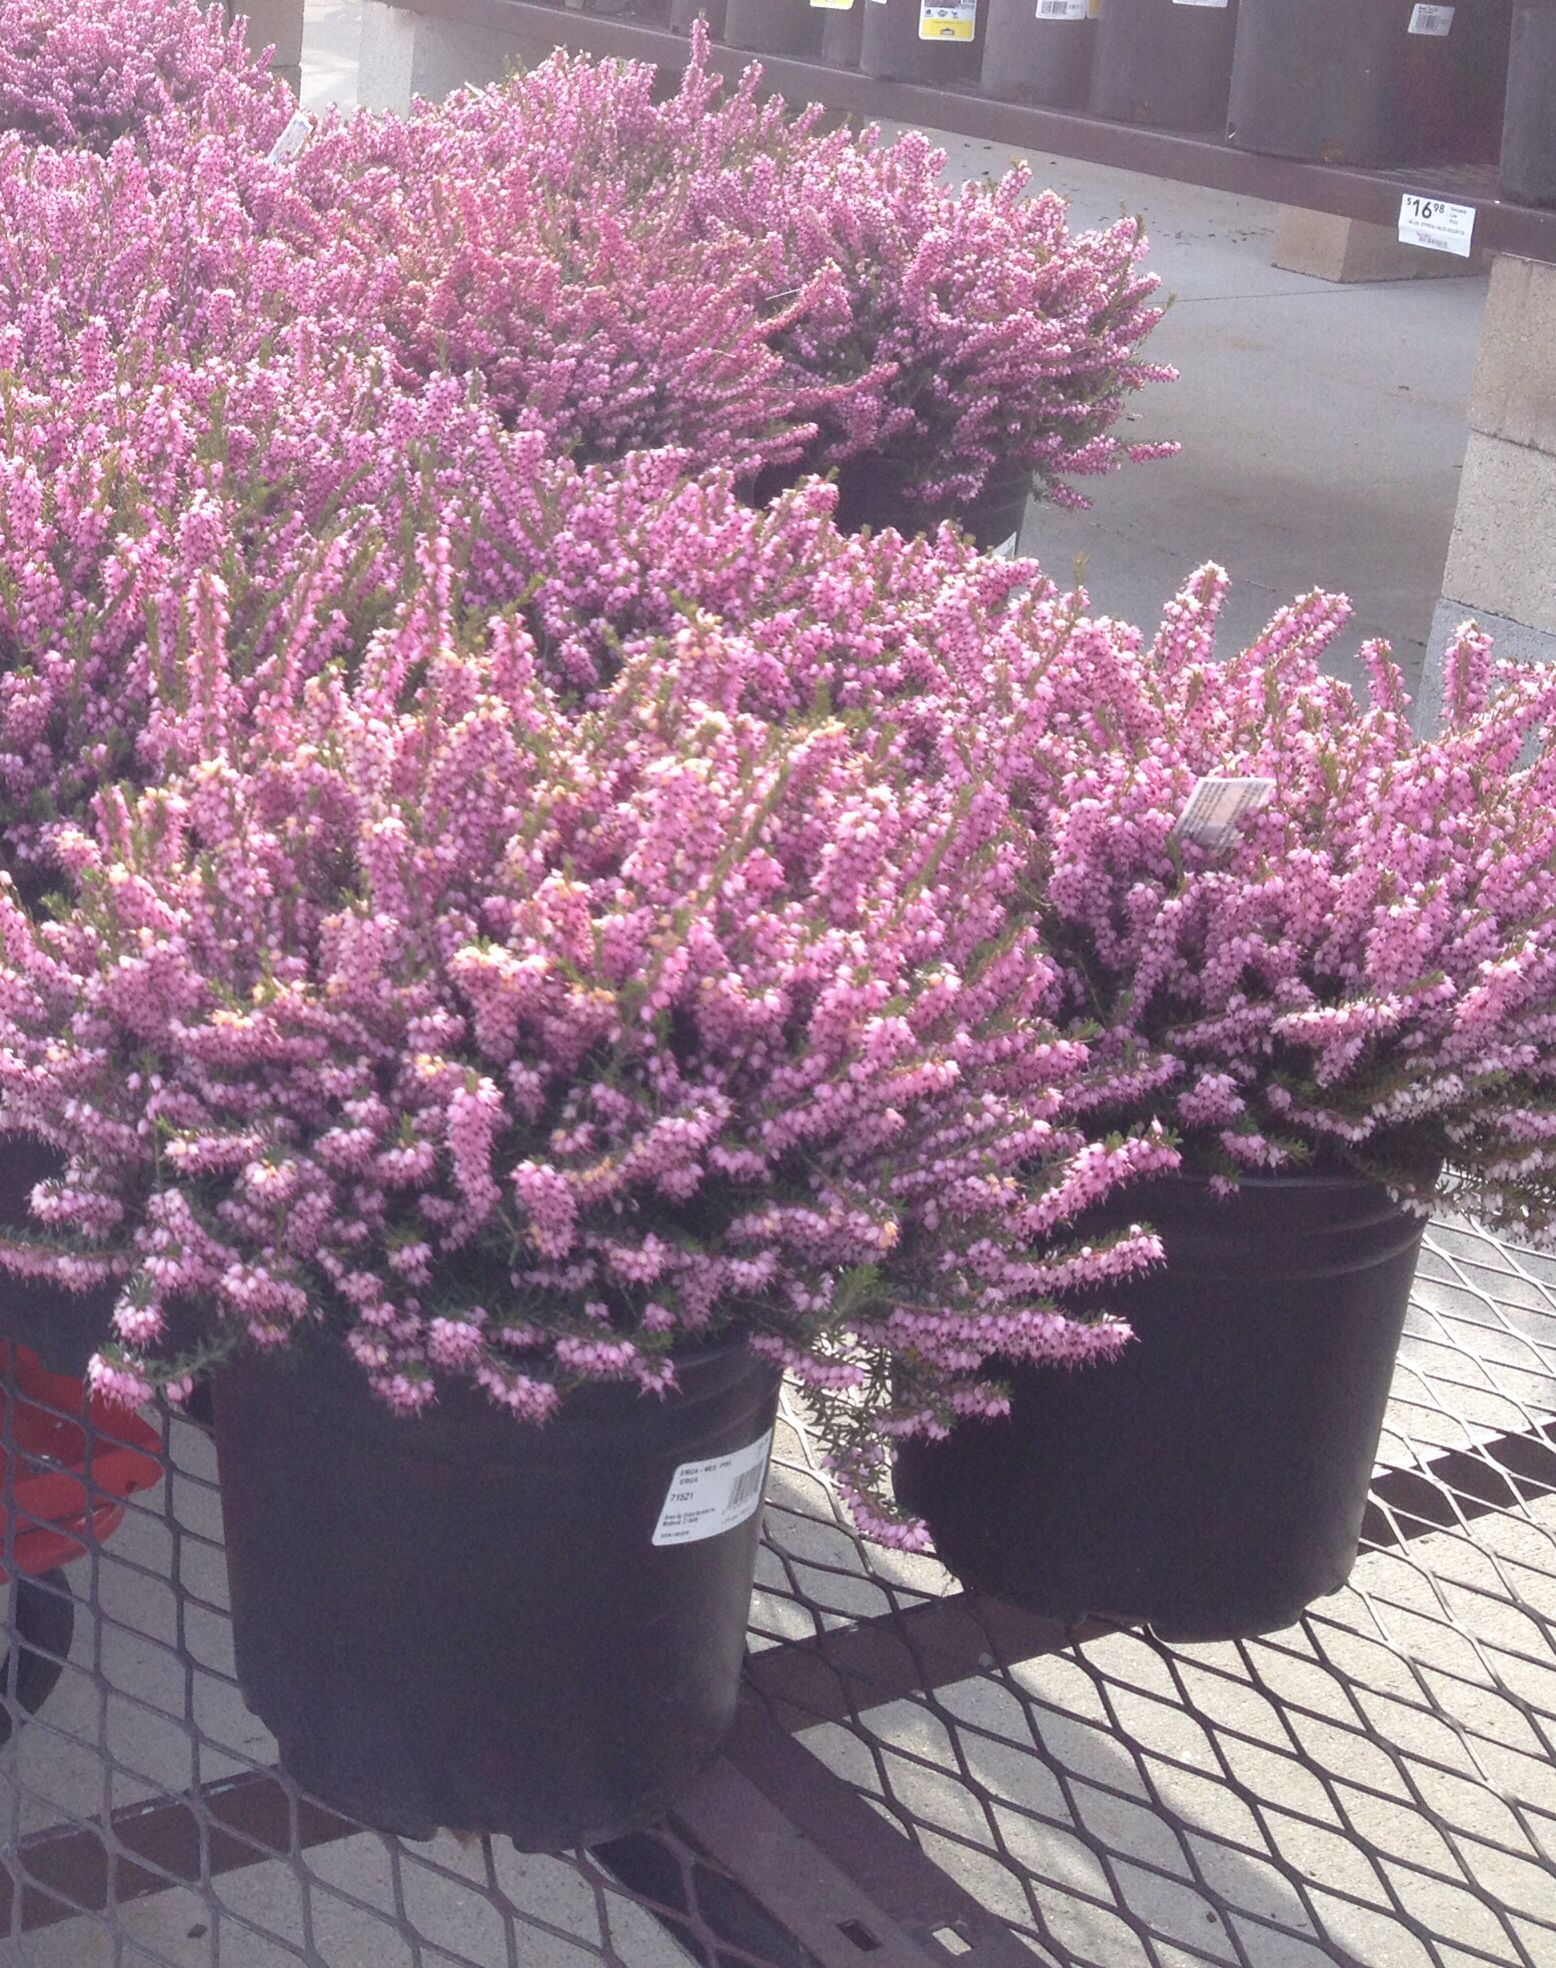 Mediterranean Pink Heather Great For Year Round Dense Cover Flowers Last Through Winter And Early Spring Heather Plant Garden Beds Landscaping Plants